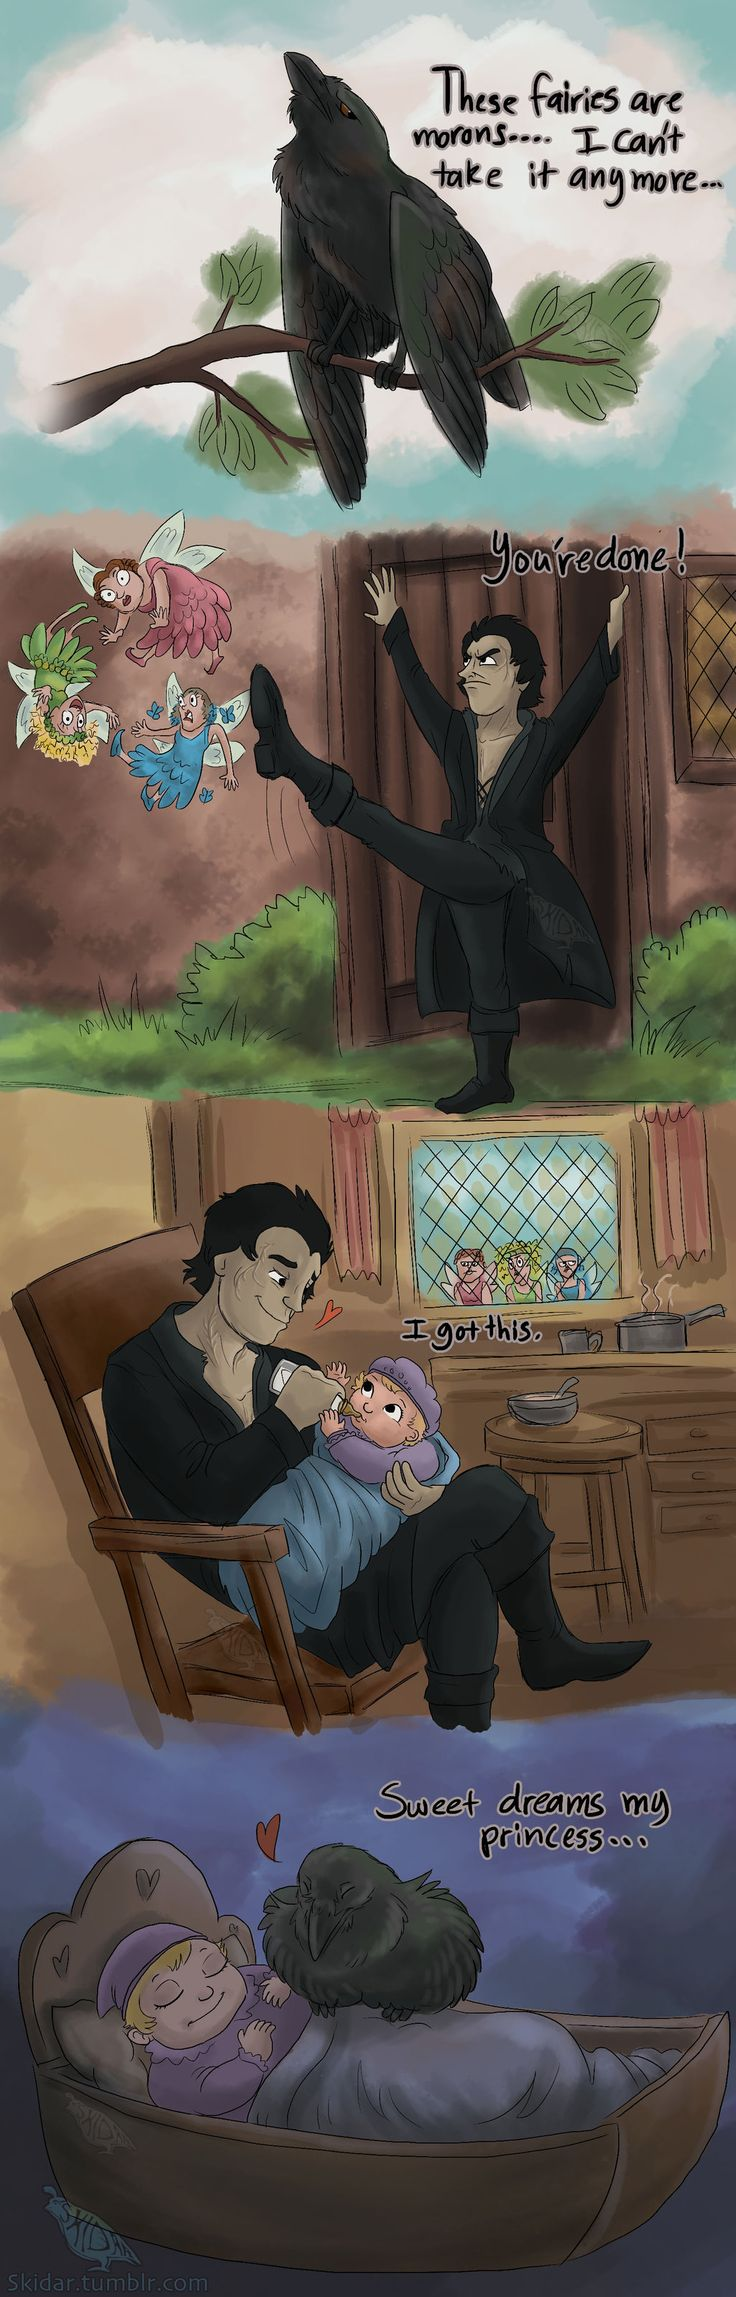 Uncle Diaval by Ski-Machine.deviantart.com on @deviantART | ahhh so cute, seriously this should have happened. Kick those idiots to the curb